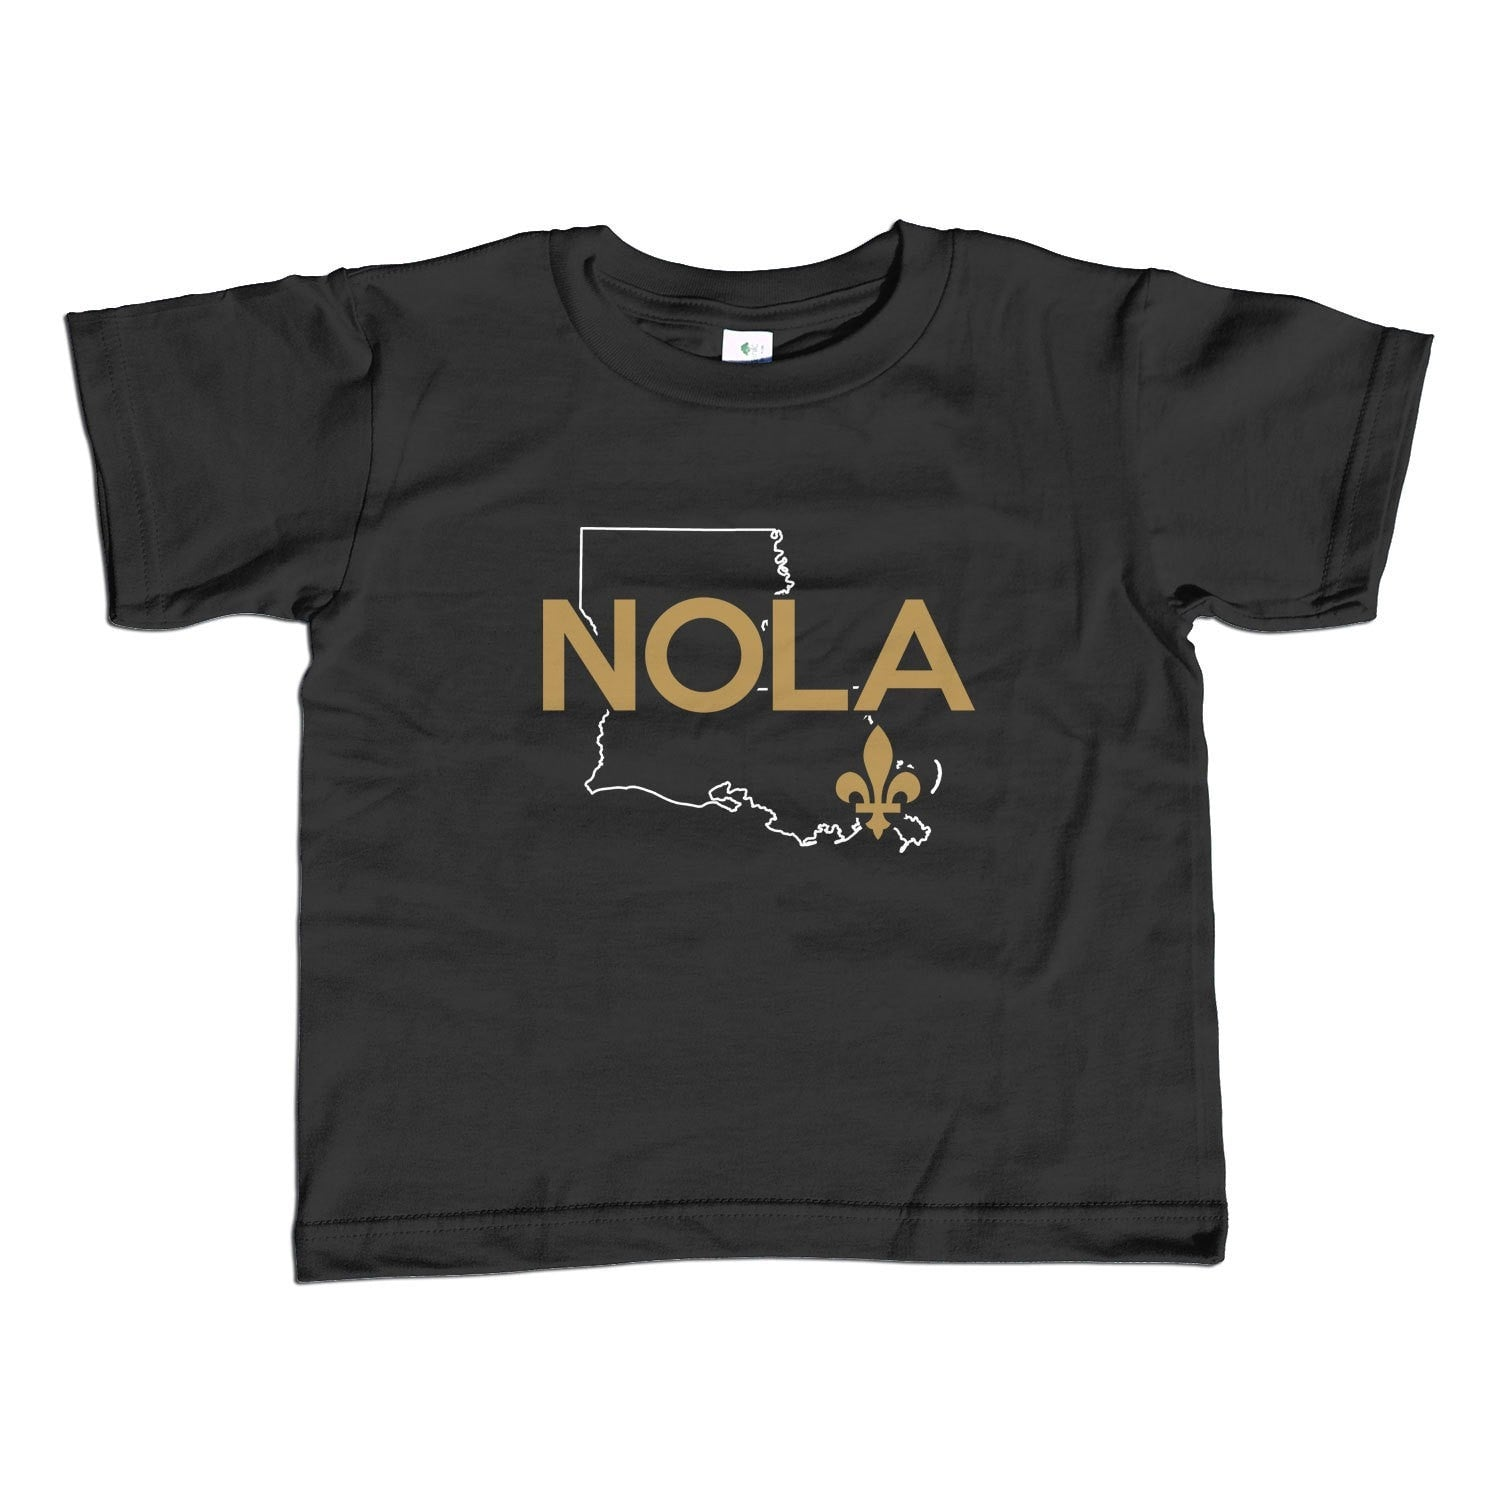 Girl's New Orleans NOLA T-Shirt - Unisex Fit